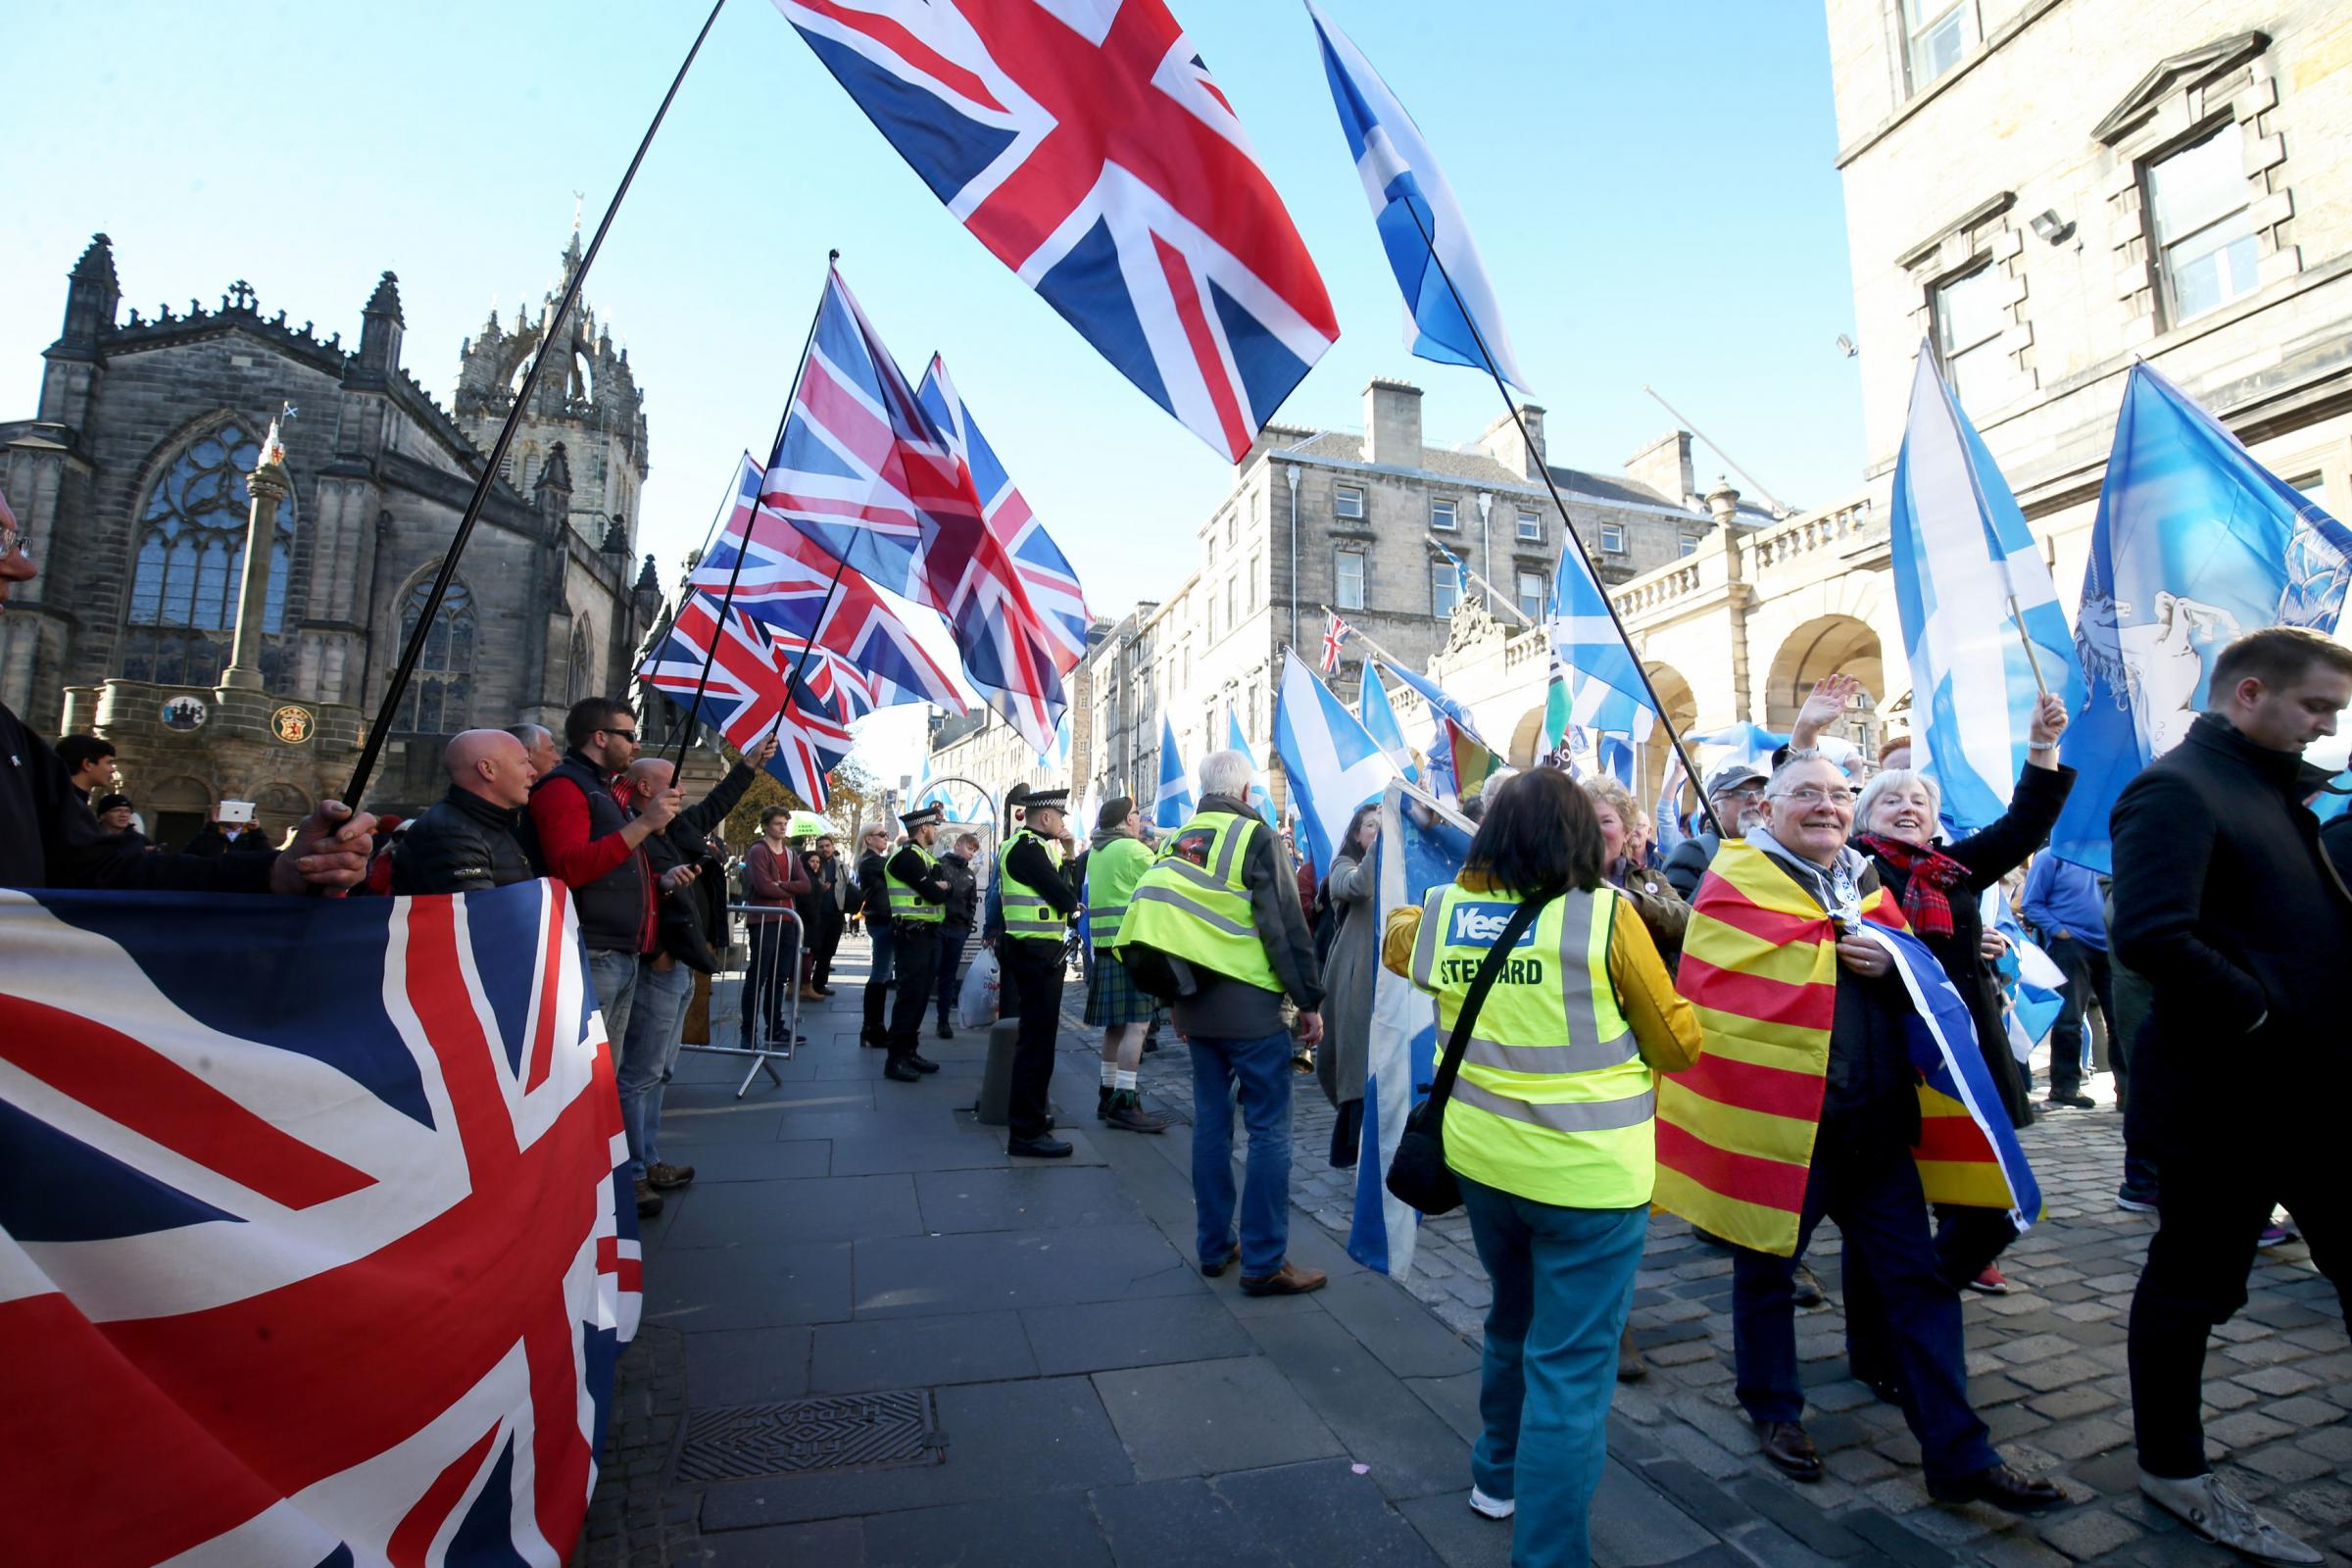 Thousands march through Edinburgh to back Scottish independence